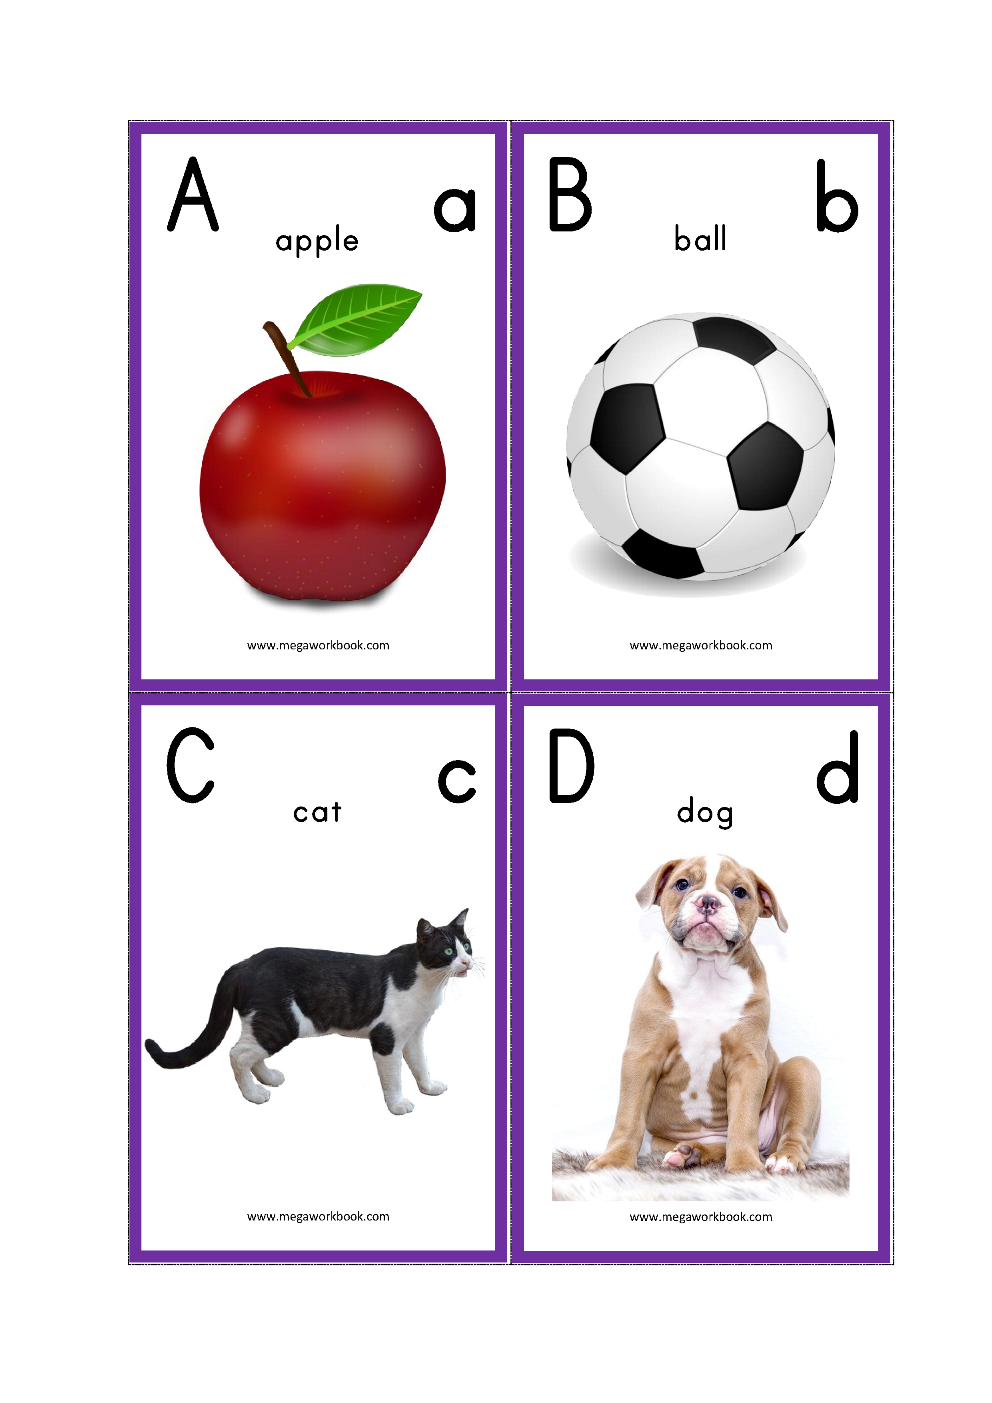 photograph about Abc Flash Cards Printable known as Alphabet Flash Playing cards - ABC Flash Playing cards - Letter Flashcards